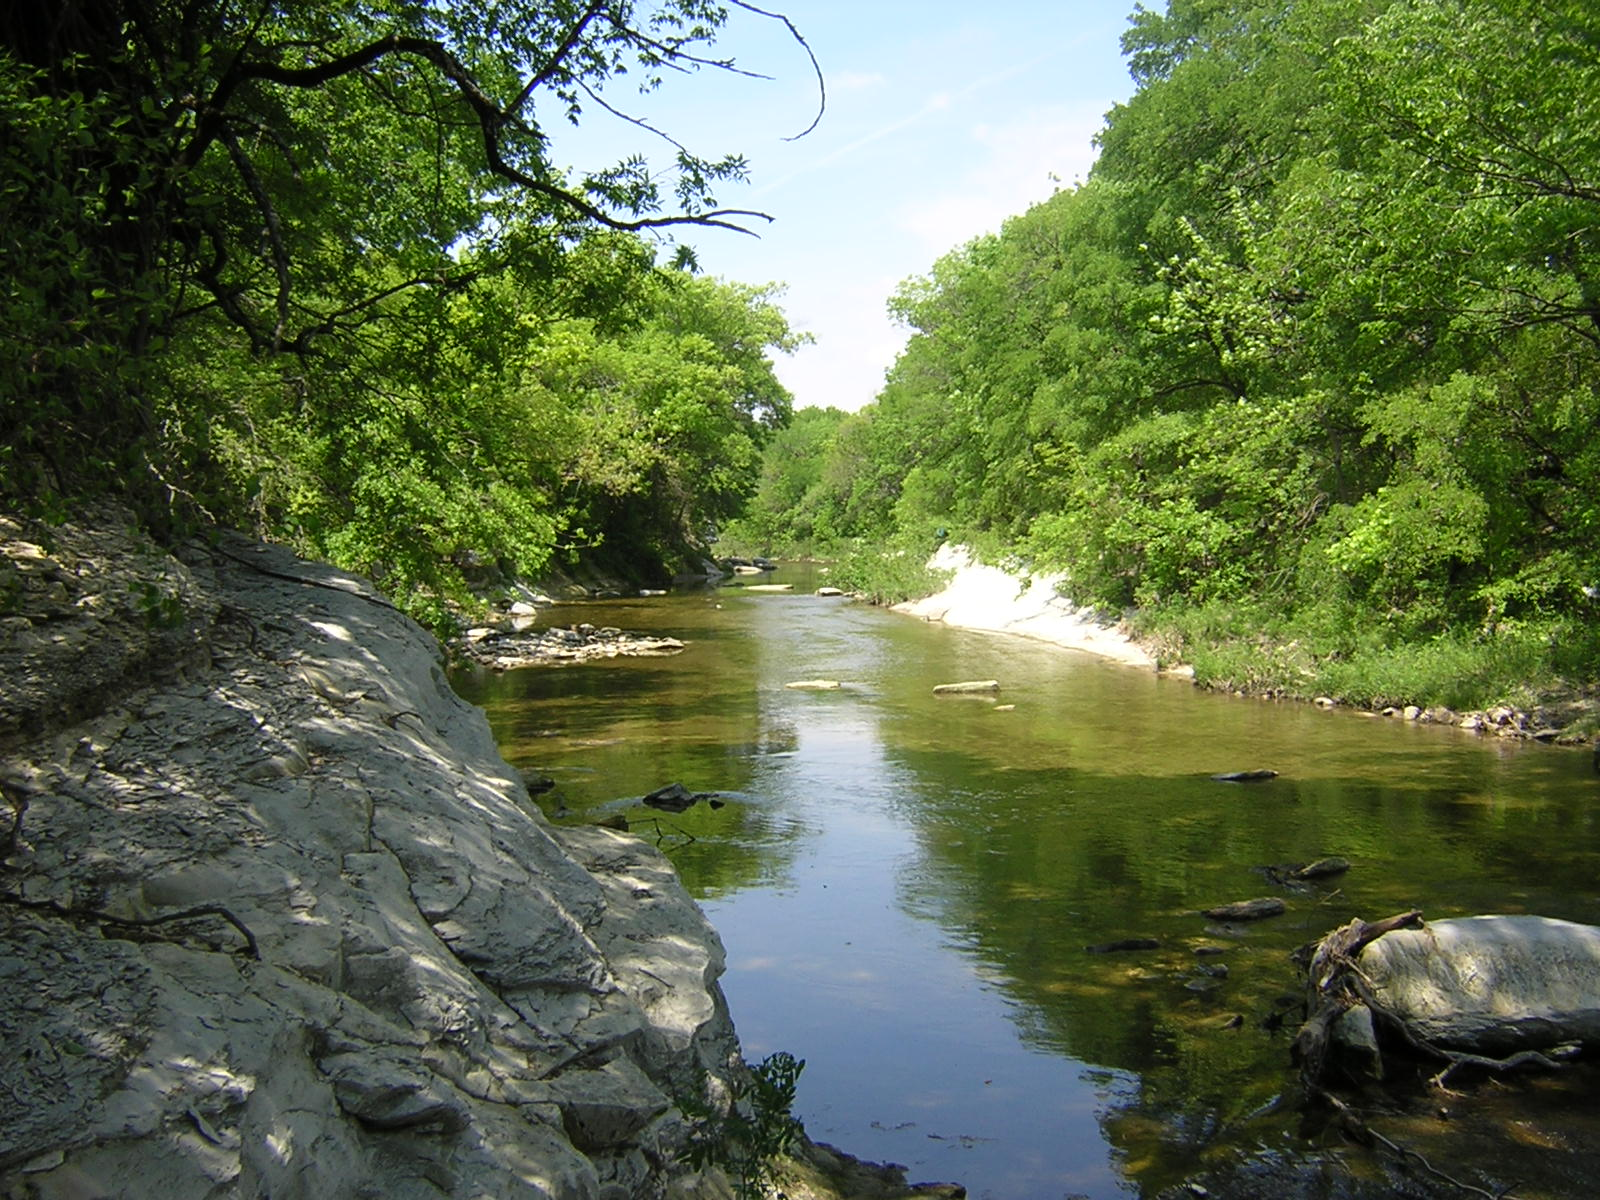 White_rock_creek_dallas_county_texas